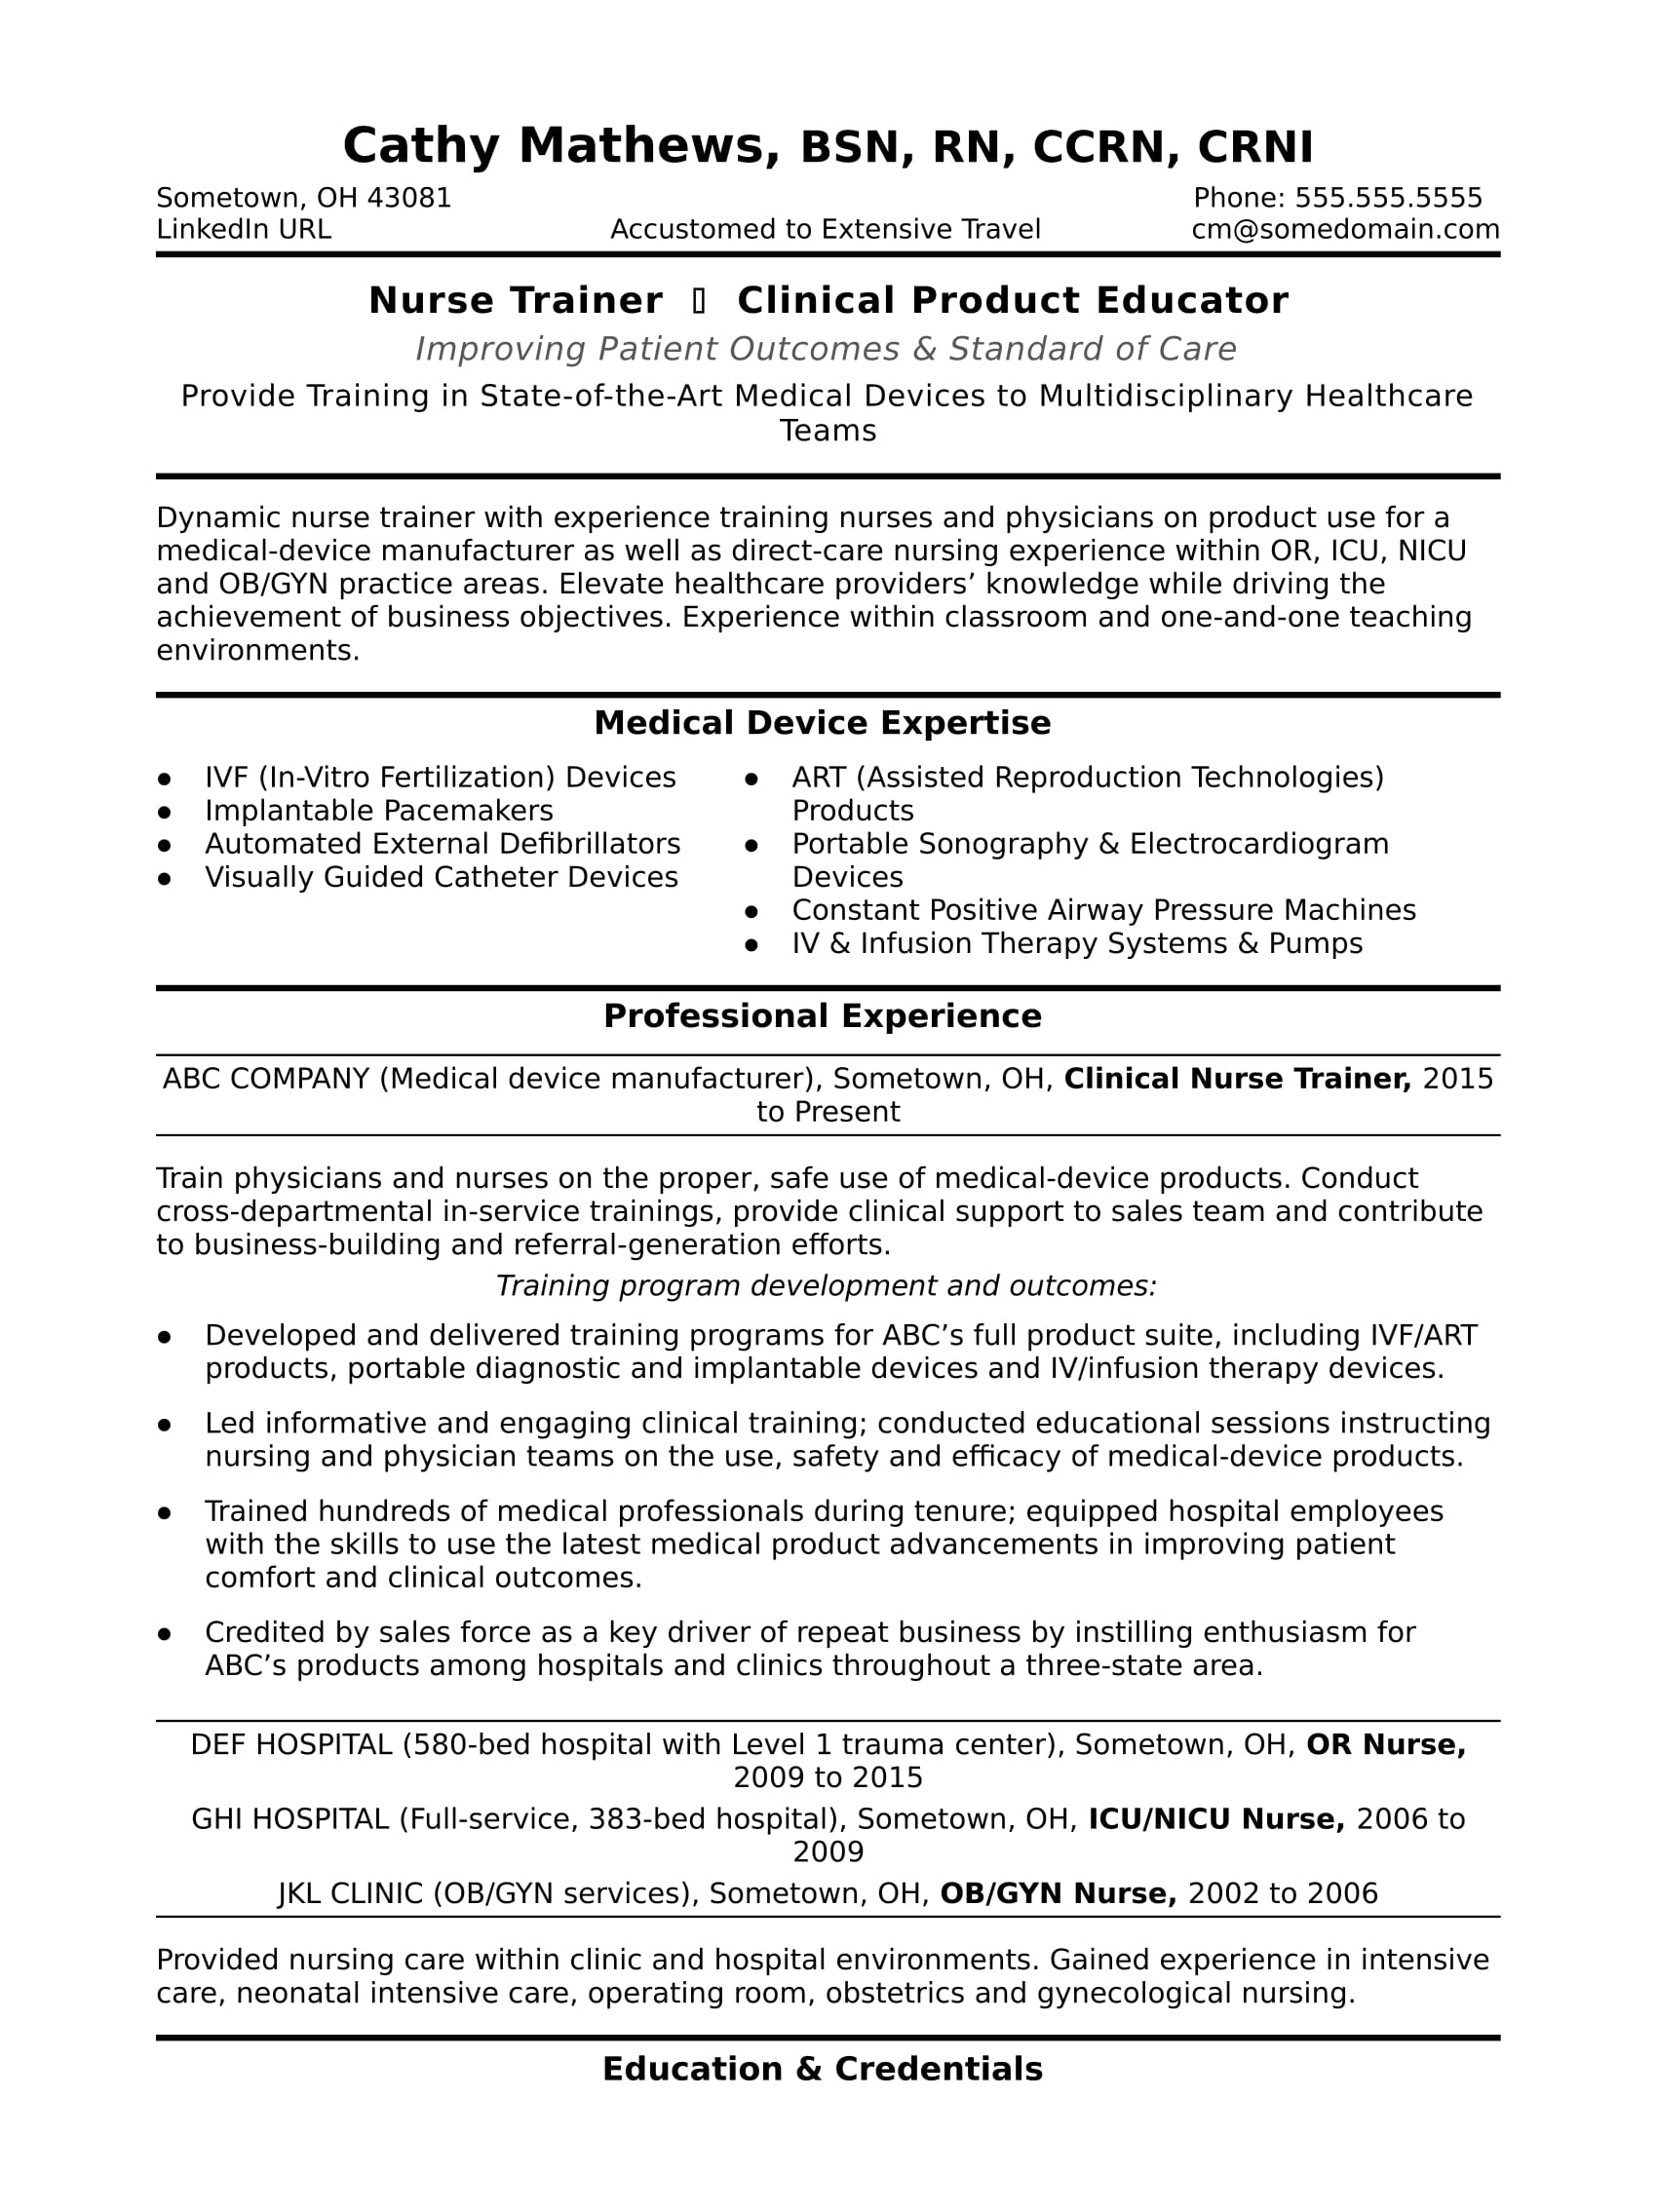 nurse trainer resume sample monster with clinical experience web testing structure ats Resume Resume With Clinical Experience